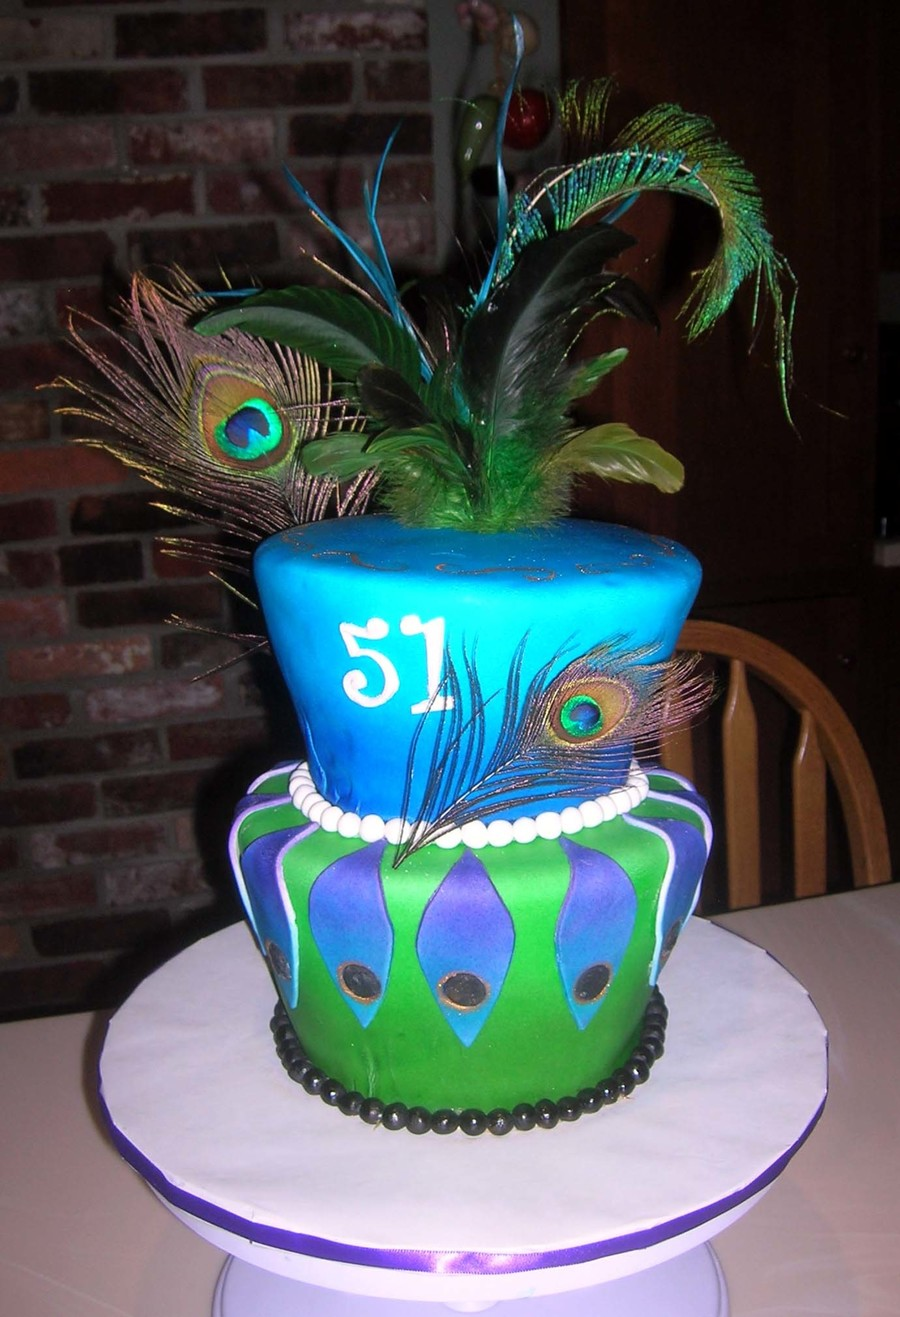 Peacock Themed Birthday Cake CakeCentralcom - Peacock birthday cake